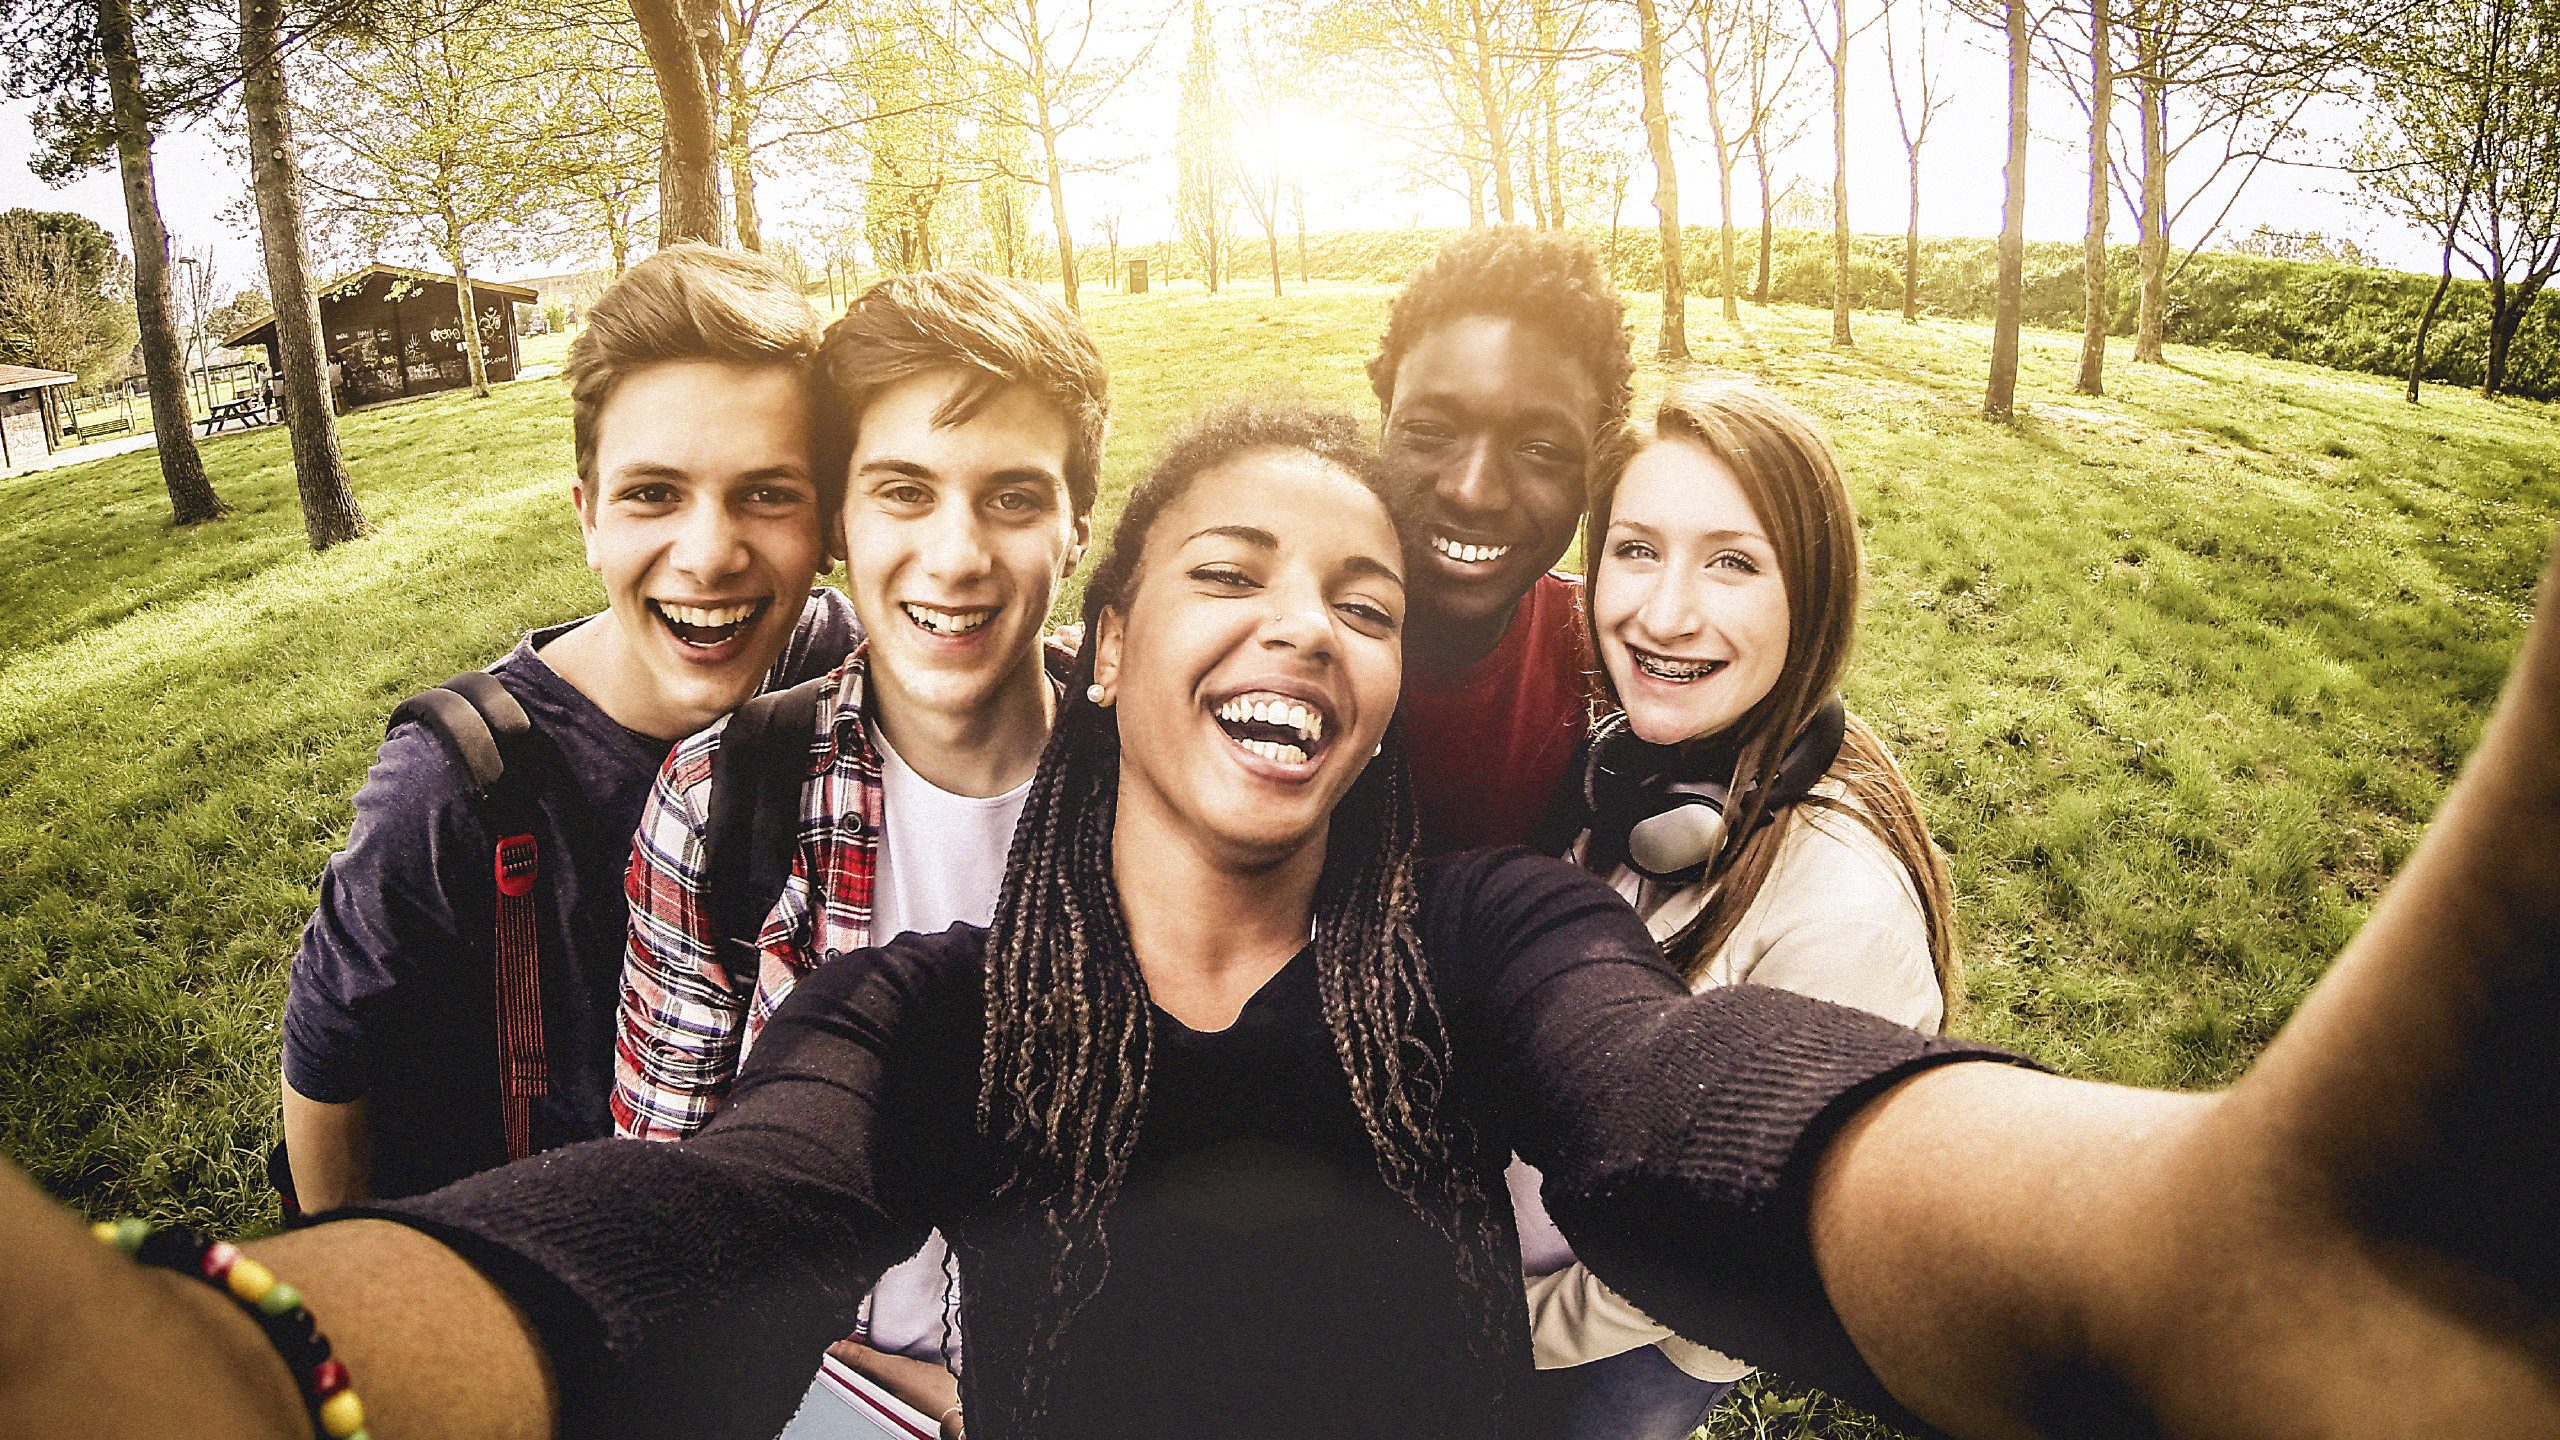 Image is a photo of 5 adolescents, smiling outdoors, holding a globe